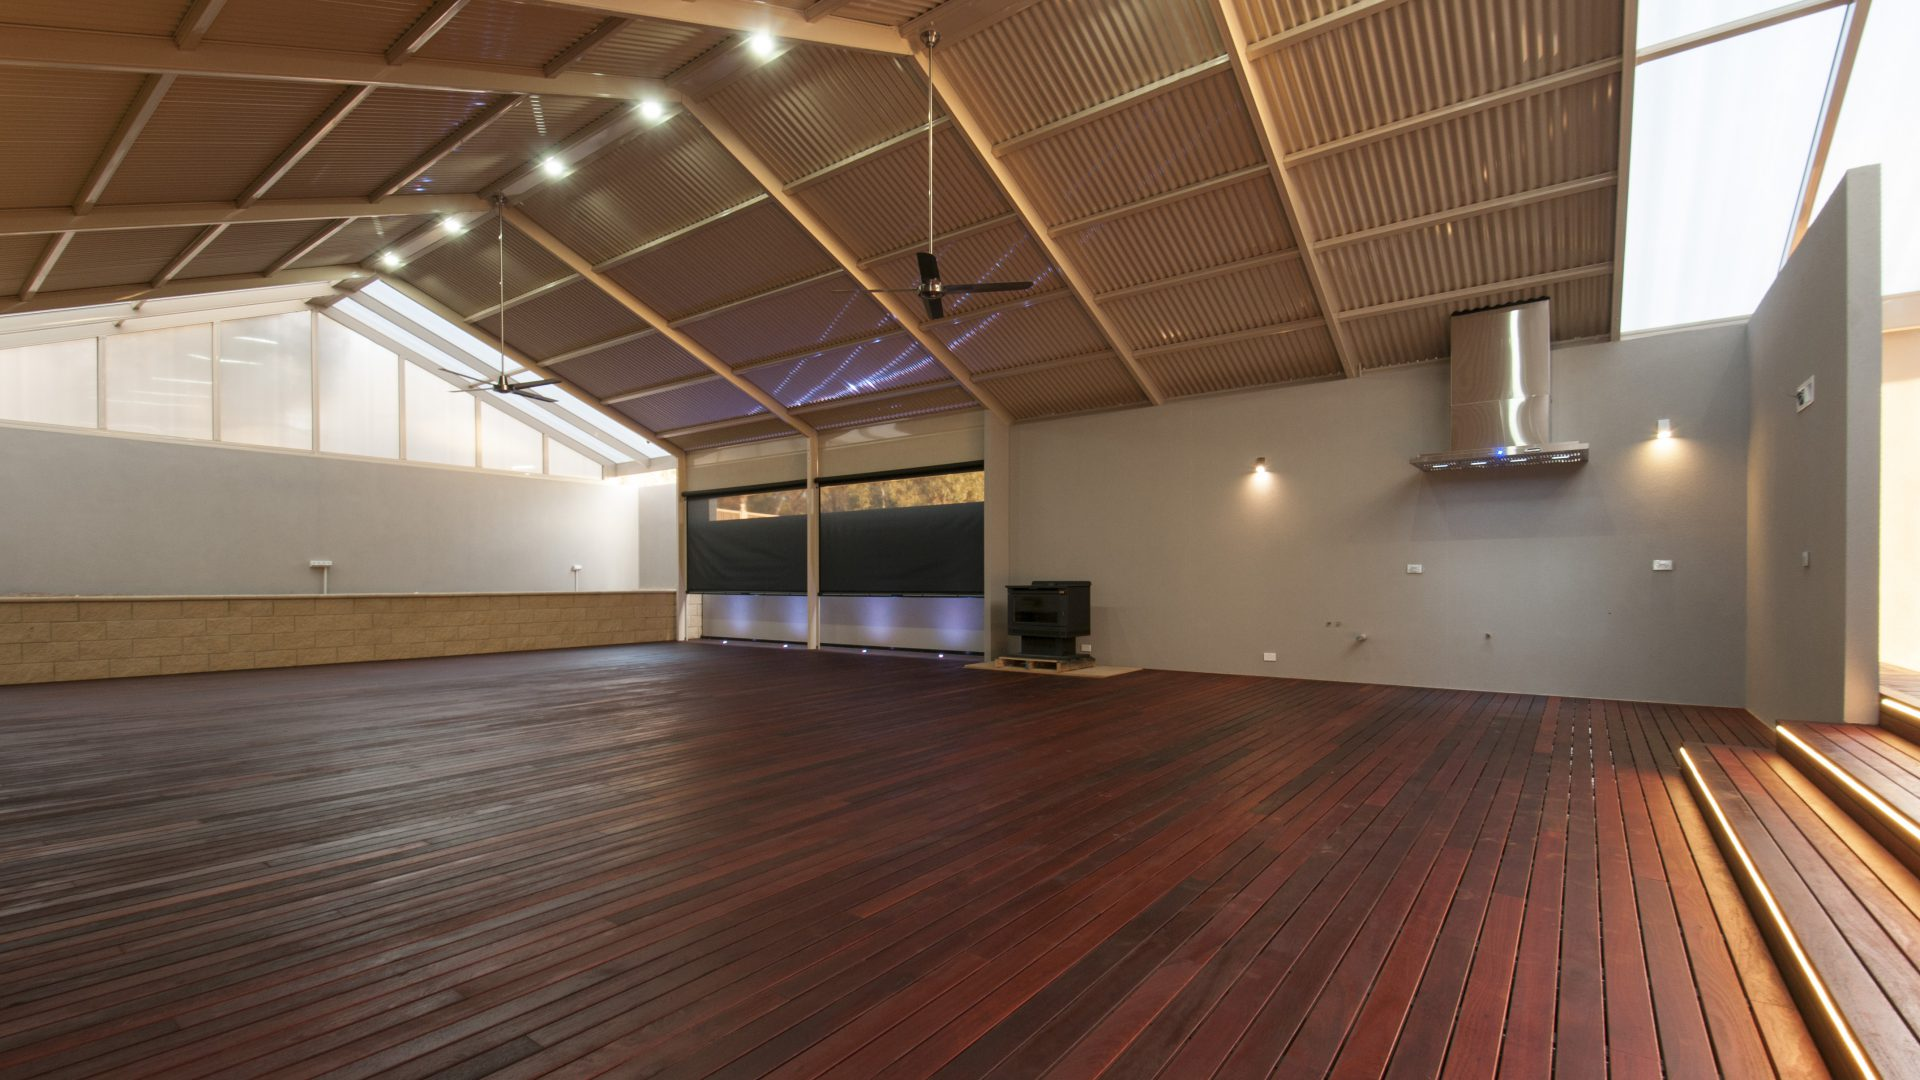 14-Wall-lights-decking-uplights-and-LED-downlights-scaled